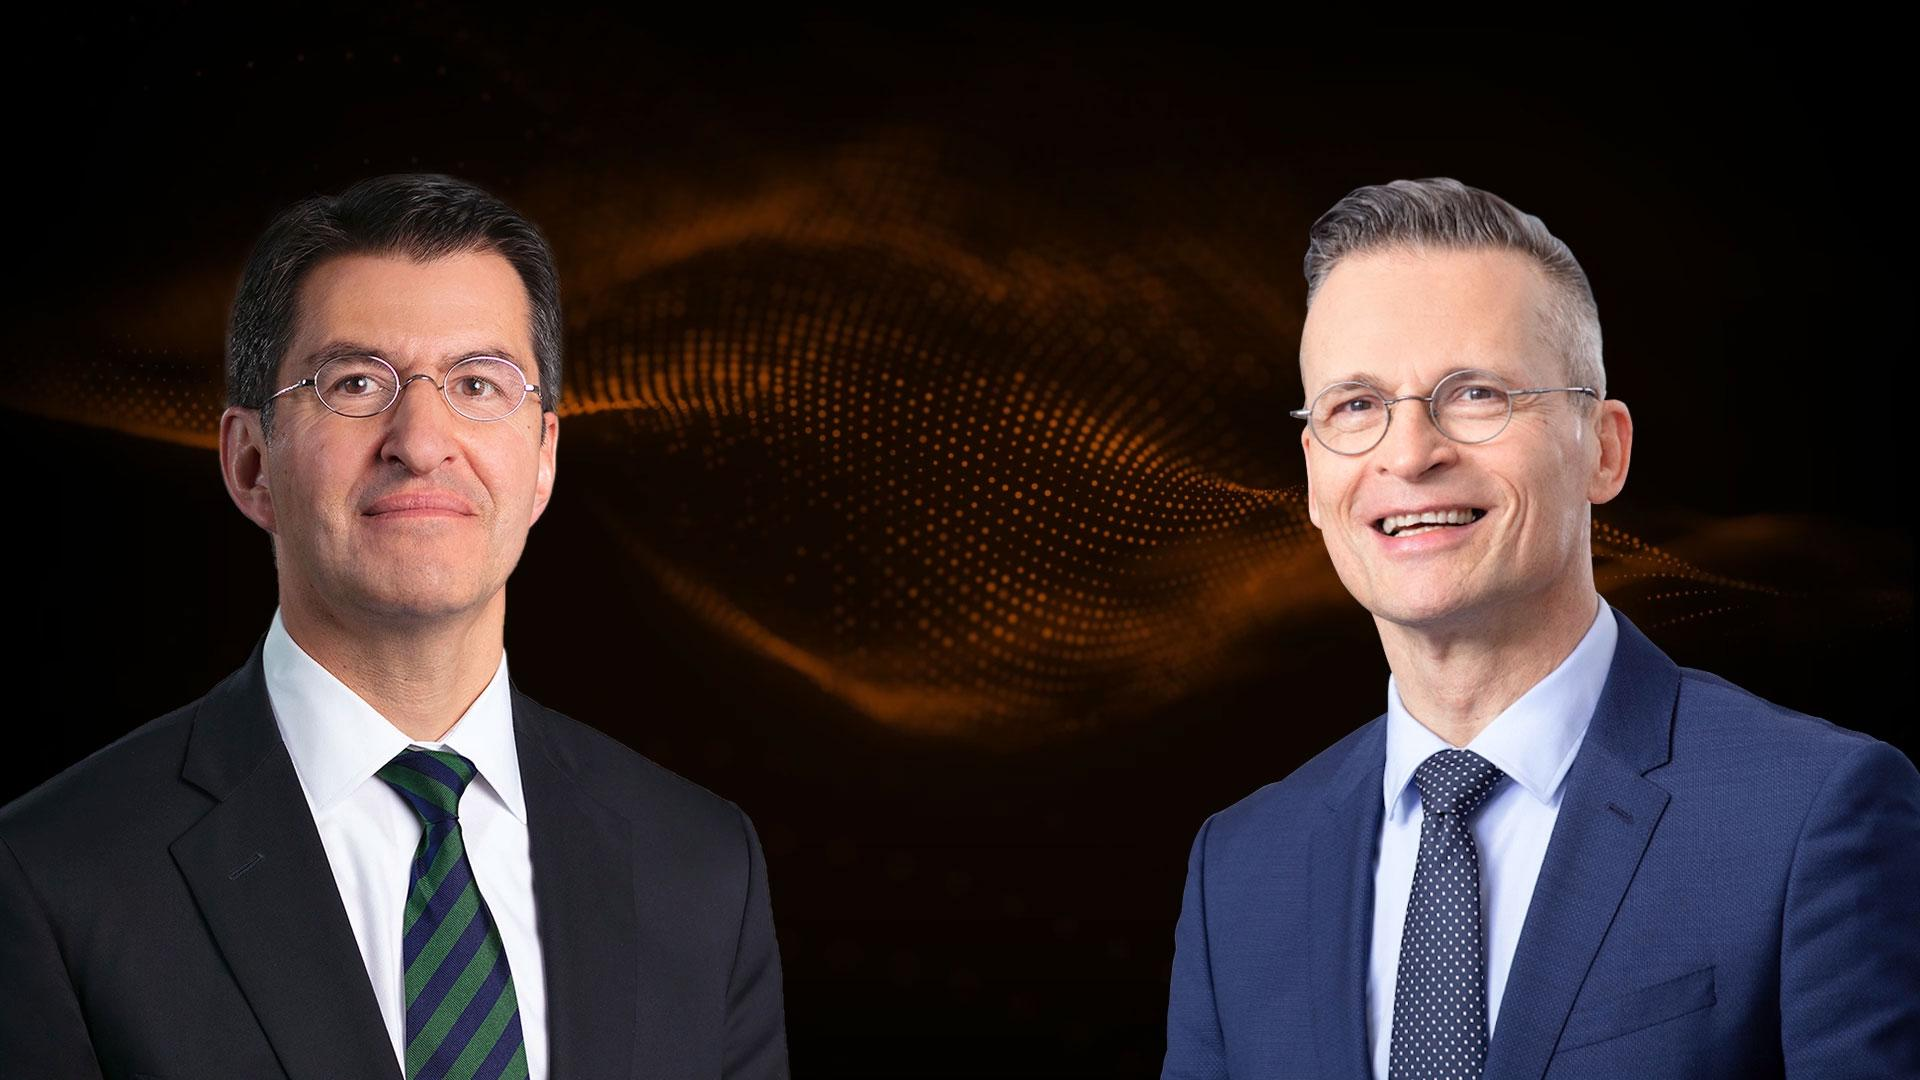 Alexander Norbash and Christoph Zindel discuss crisis management in this podcast.